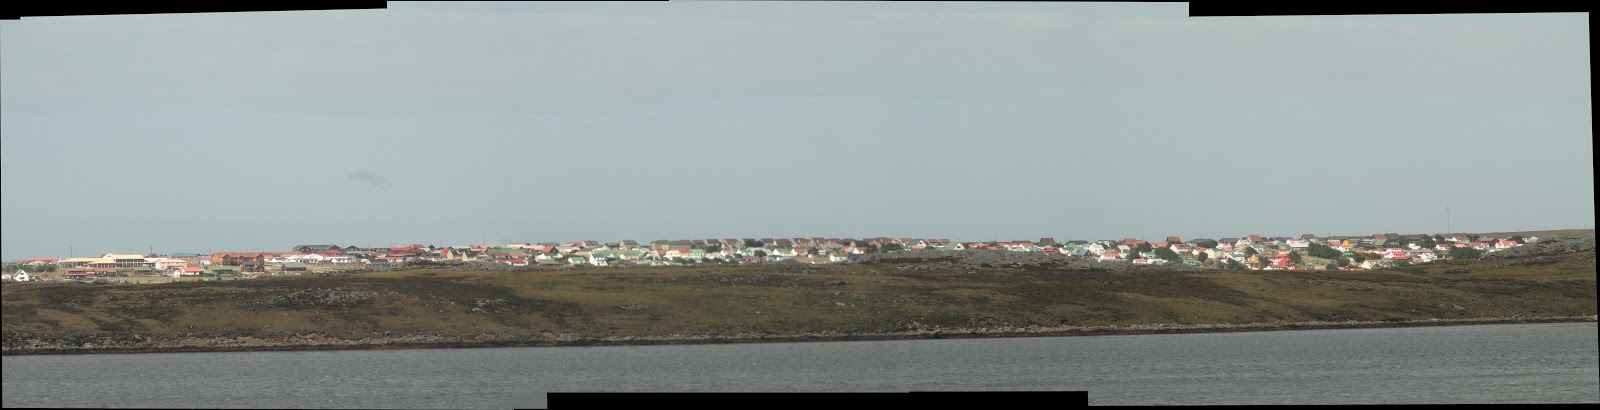 Weather In Port Stanley Falkland Islands In February